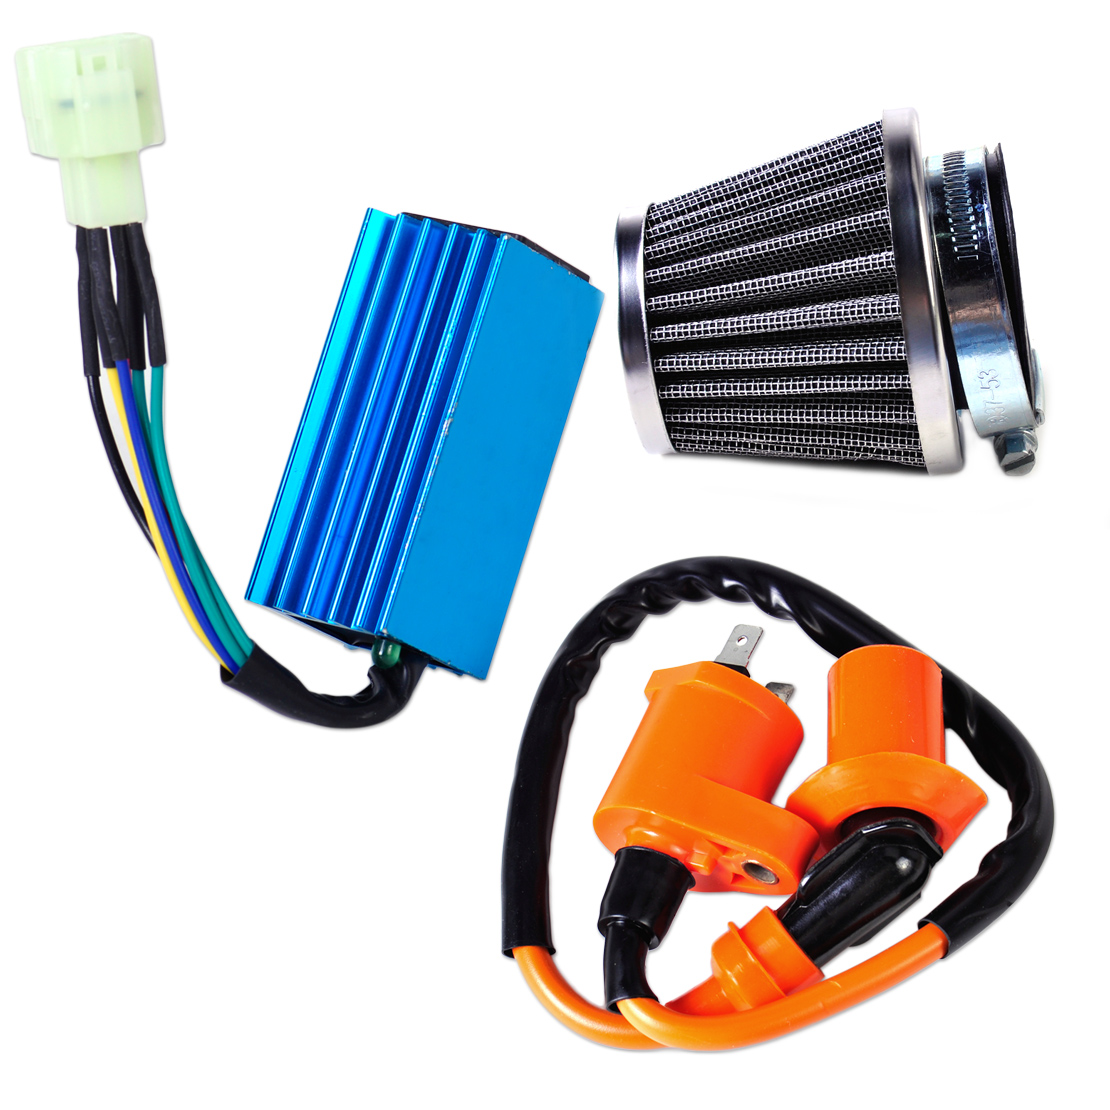 US $15 73 14% OFF|DWCX Motorcycle Racing Performance Ignition Coil +CDI Box  + Air Filter Kit for GY6 50cc 150cc Scooter Moped Go Kart Dirt bike-in